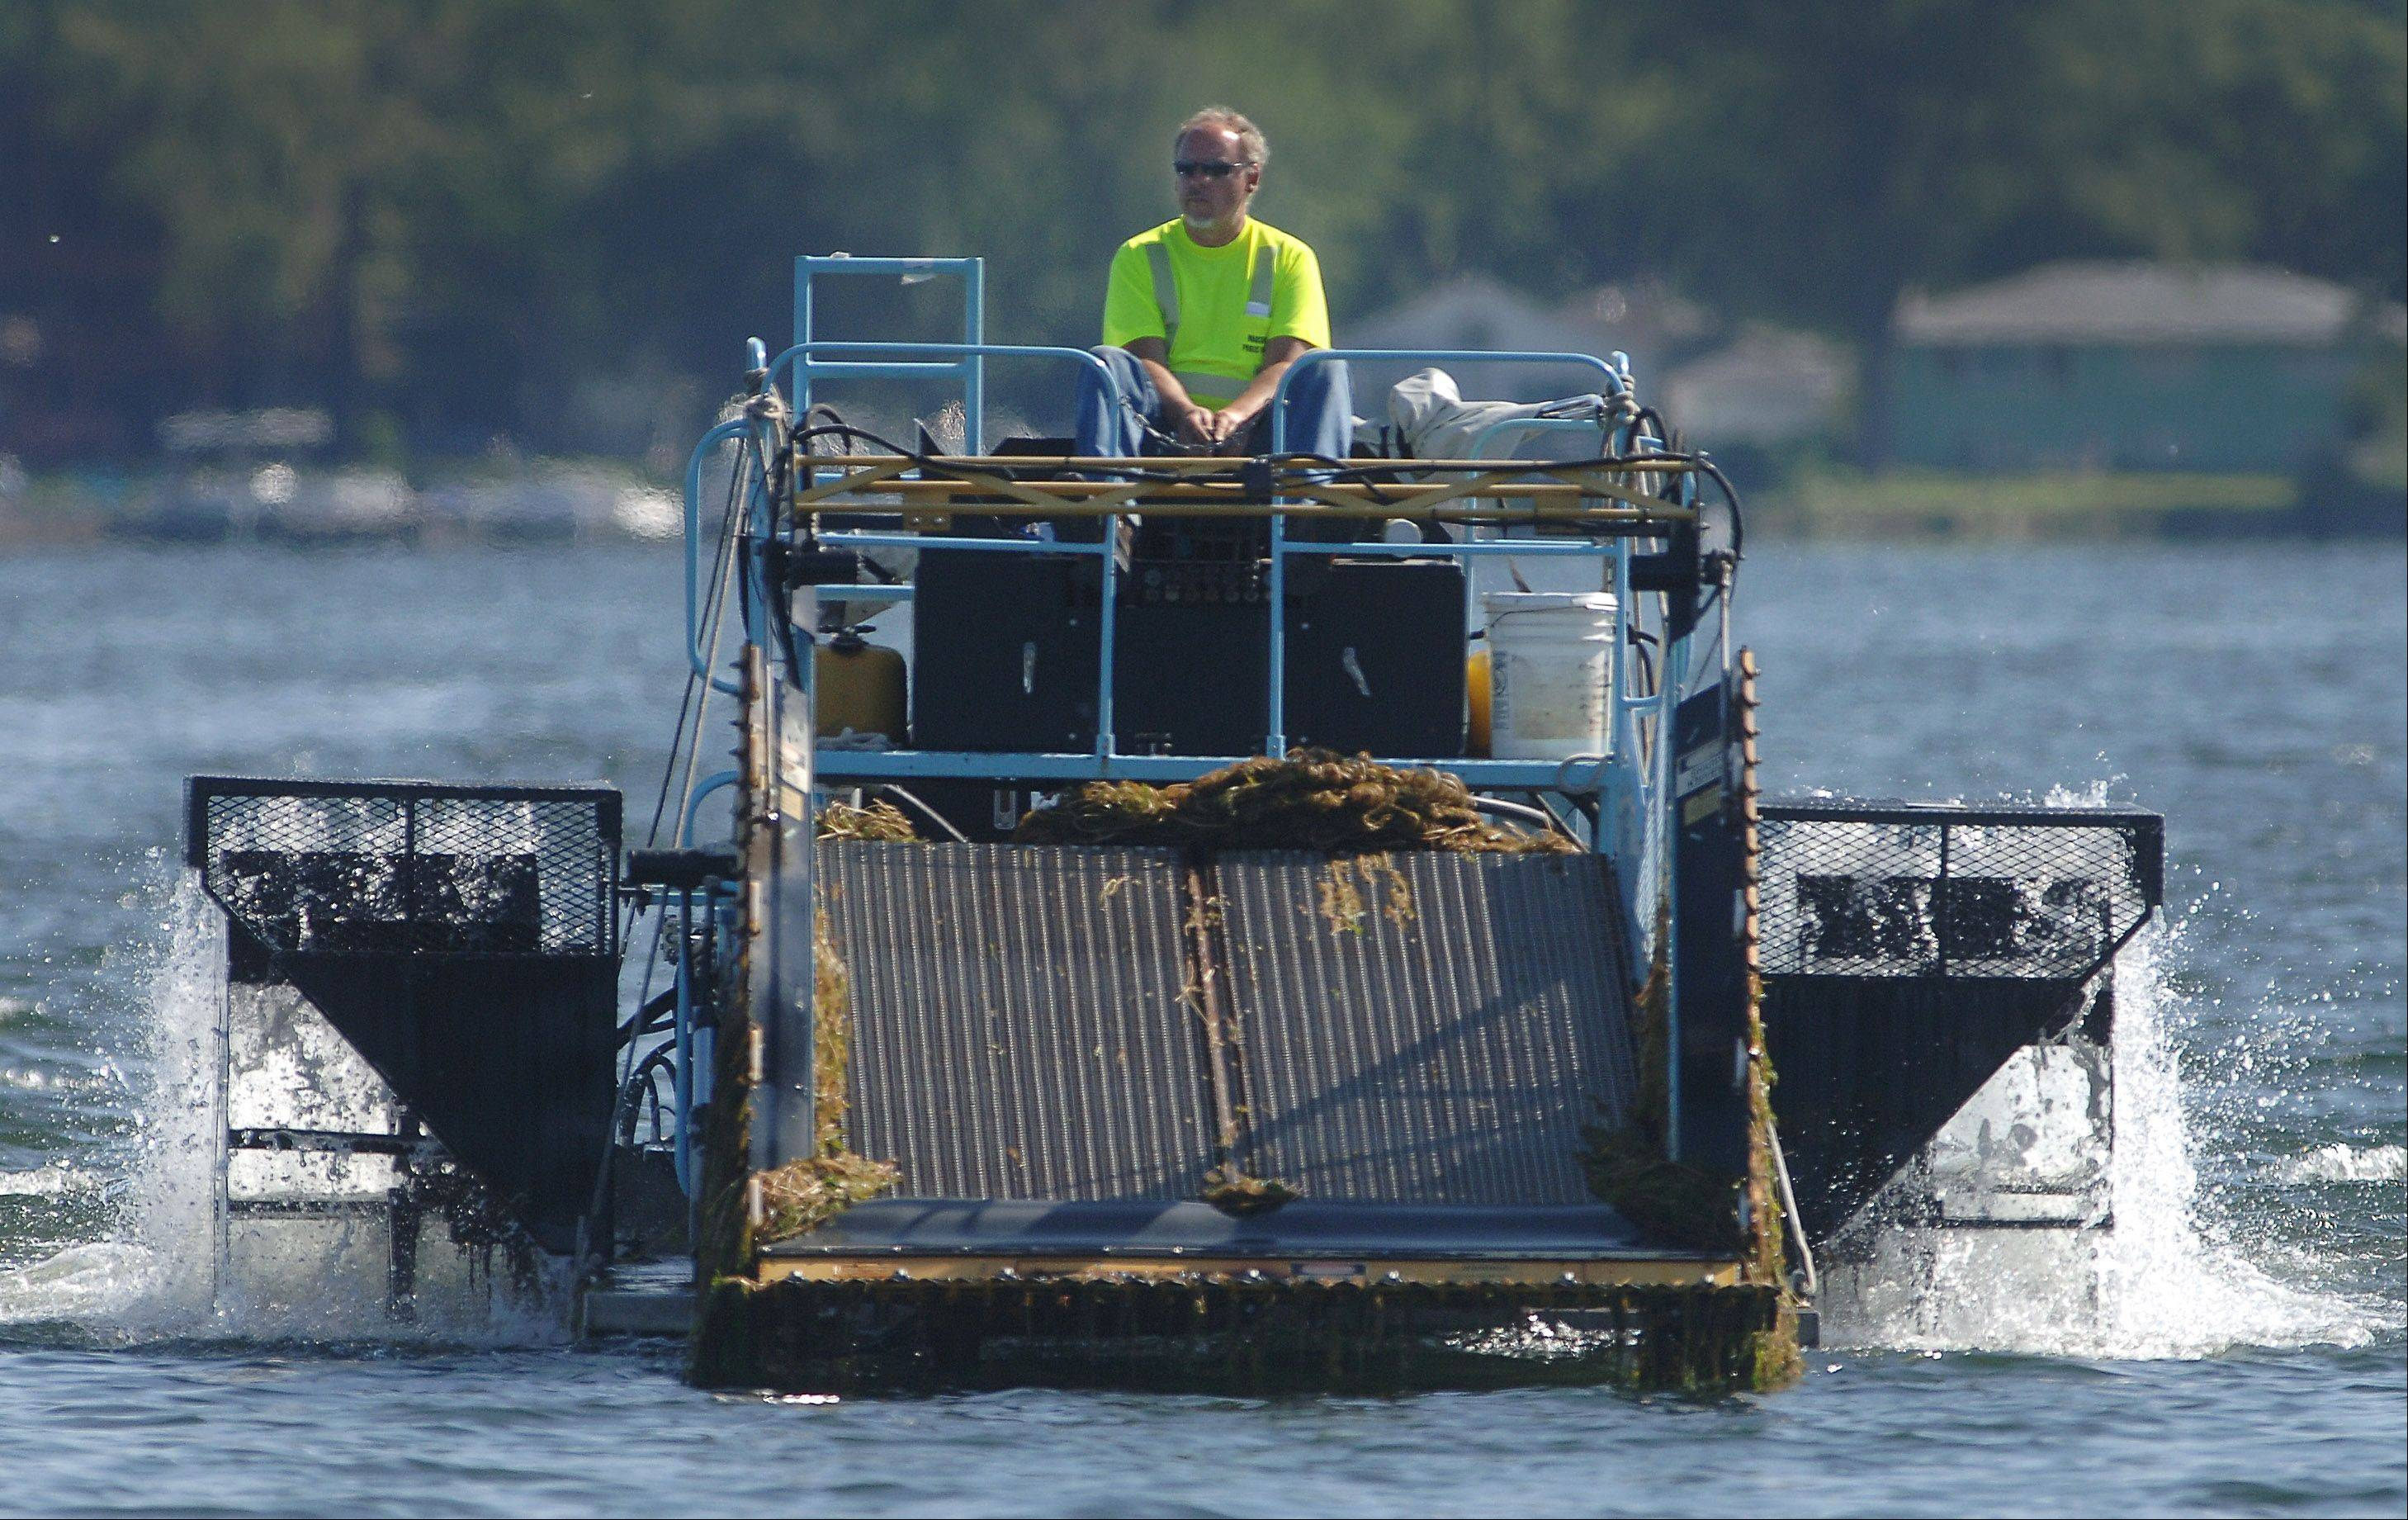 Bob Garrod of the Wauconda Public Works department operates the aquatic plant harvester on Bangs Lake. Garrod heads to shore to unload the weeds he's collected.